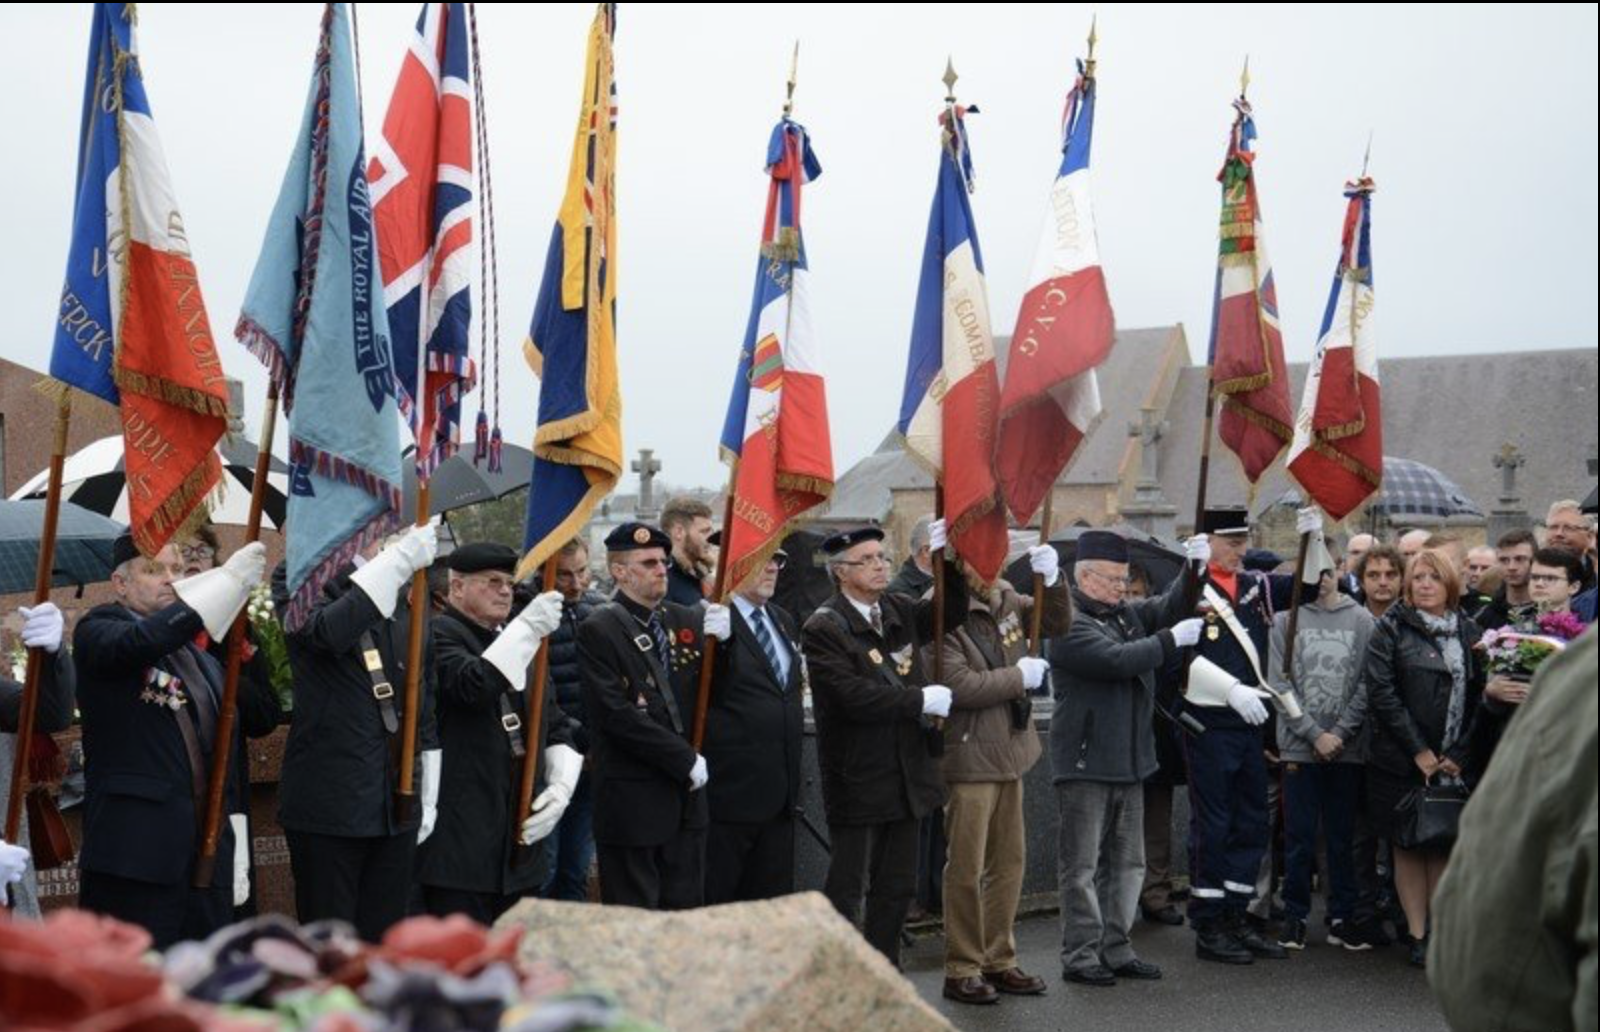 Armistice day in Berck